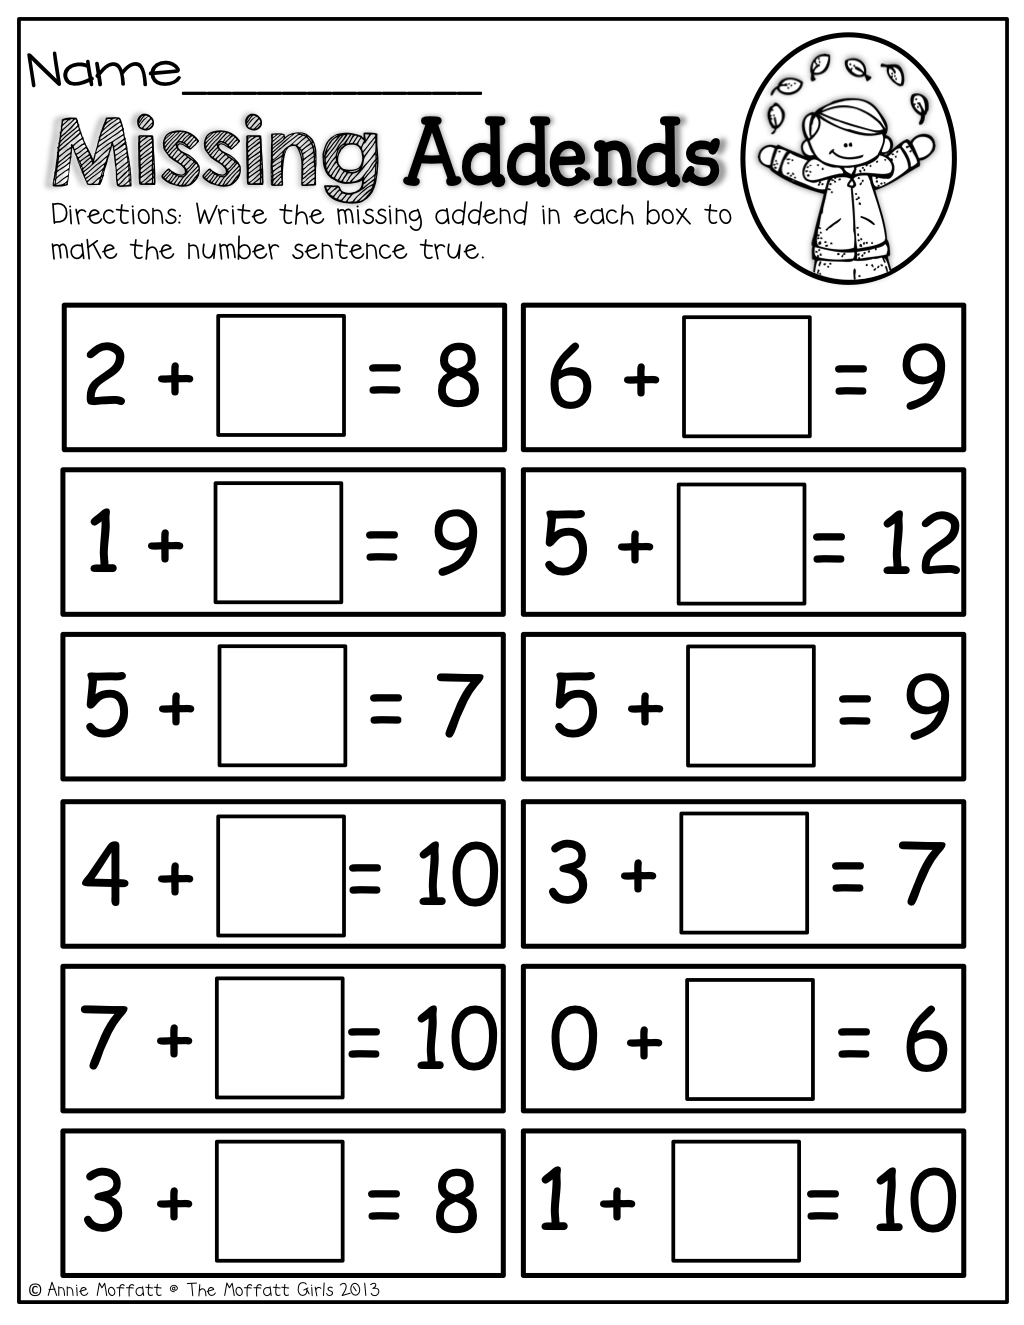 worksheet Missing Addends missing addends math pinterest literacy high schools and addends